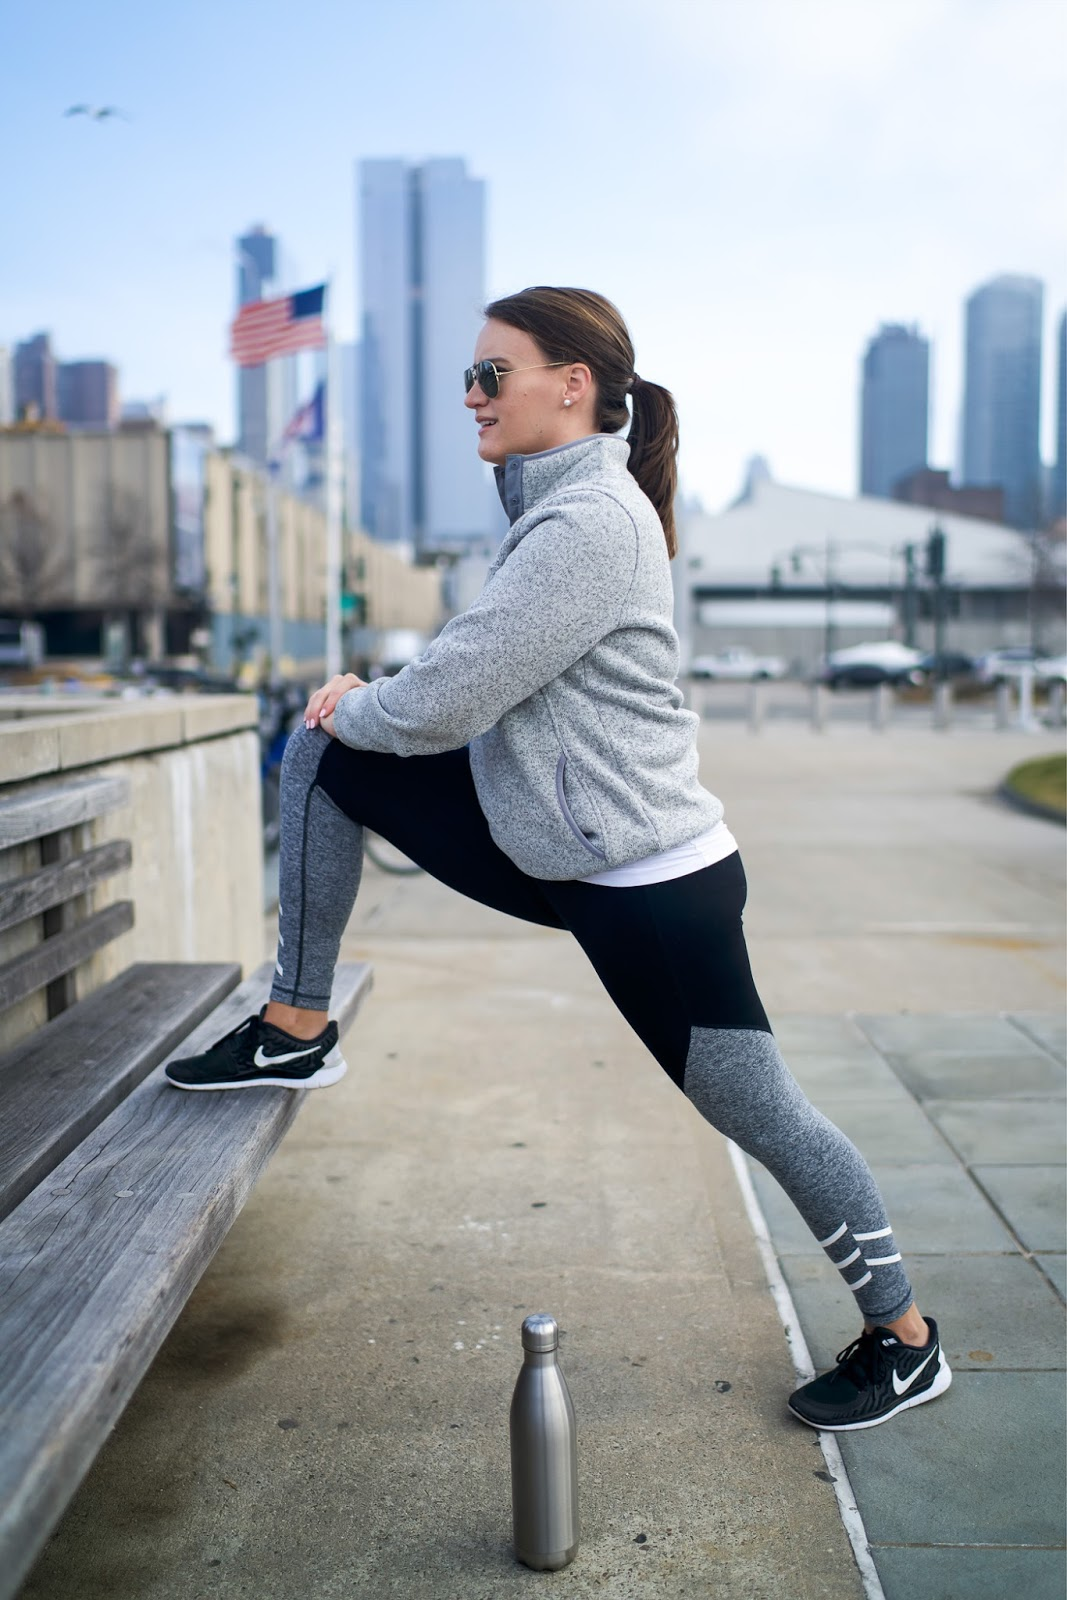 5 Attainable Fitness Goals For